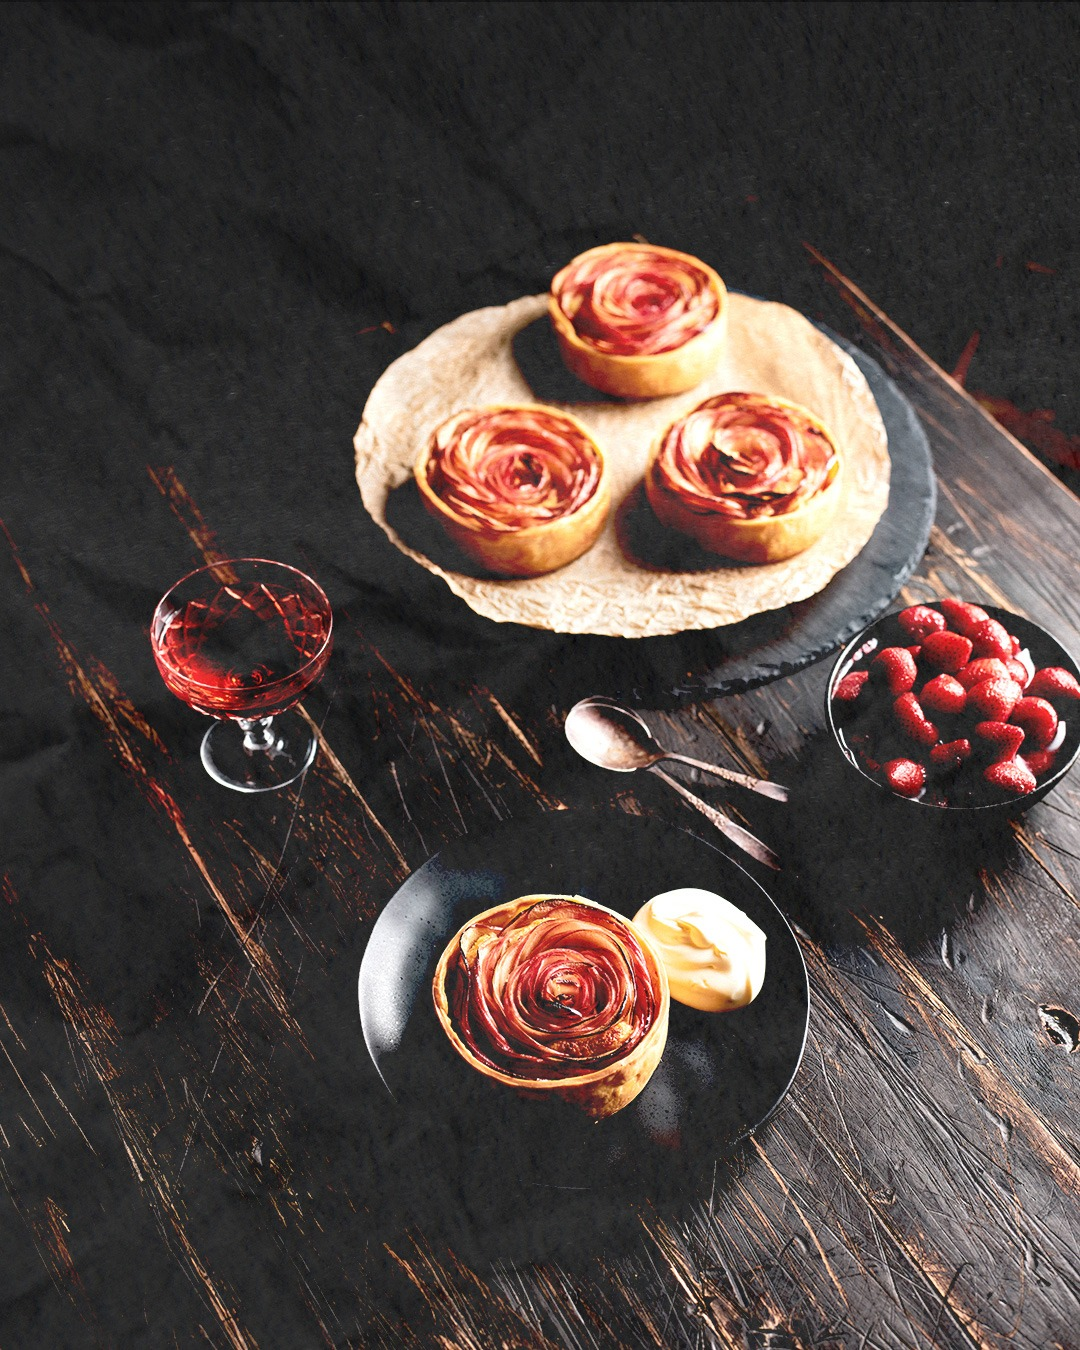 AUTUMN EDIT Apple Rose Tarts with Marinated Strawberries and Cinnamon Cream